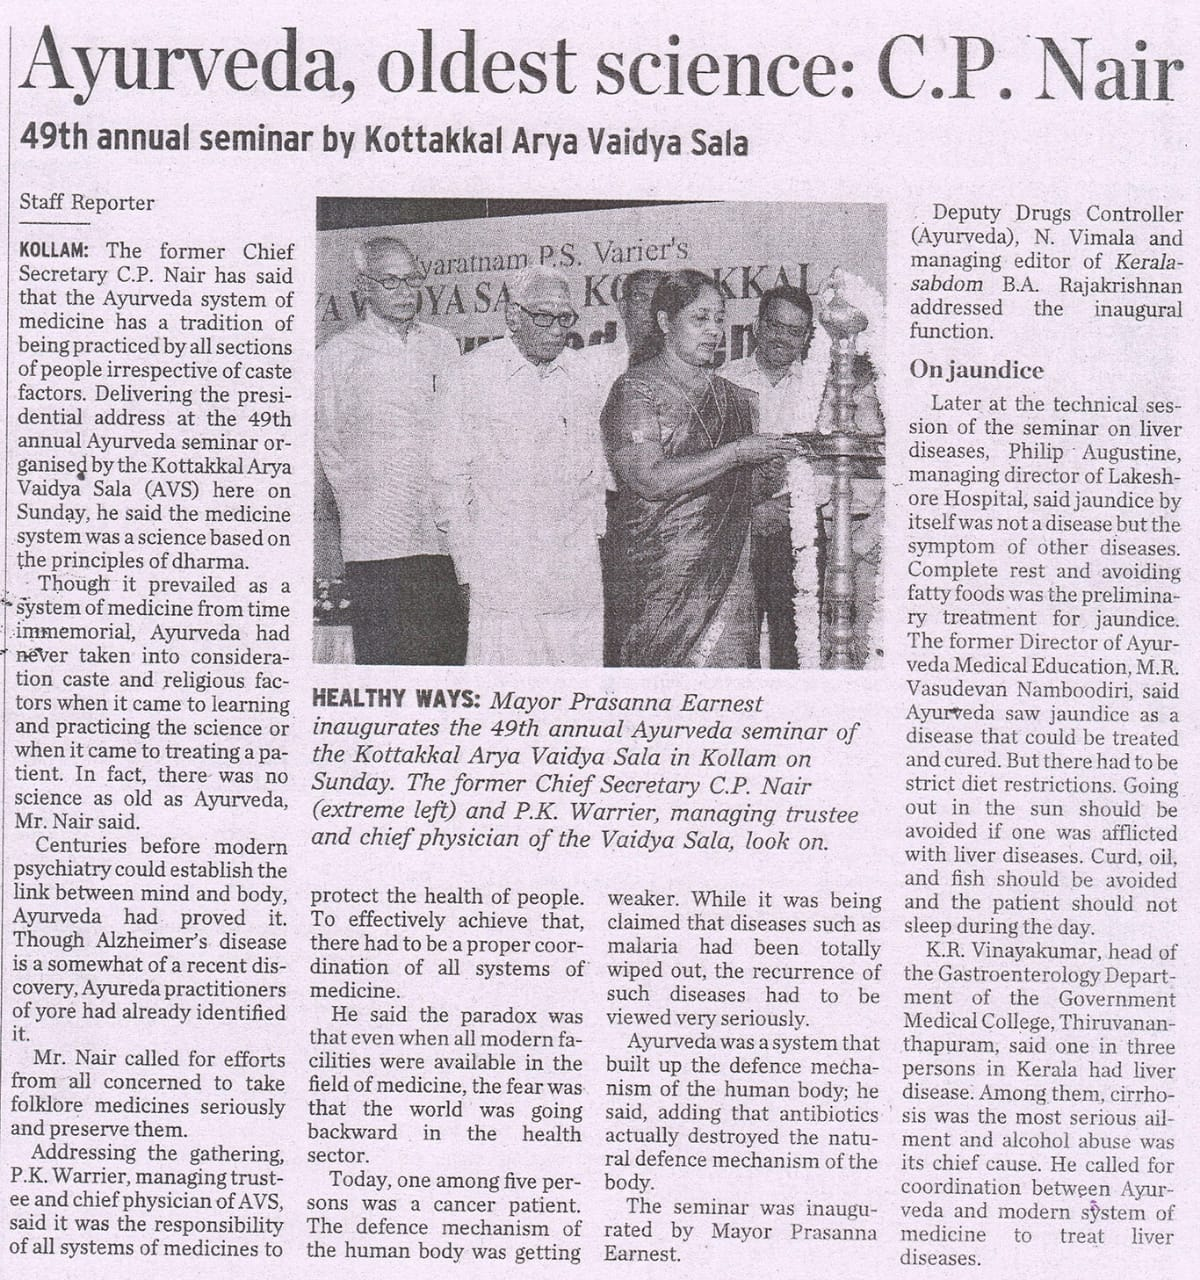 Ayurveda, The Oldest Science